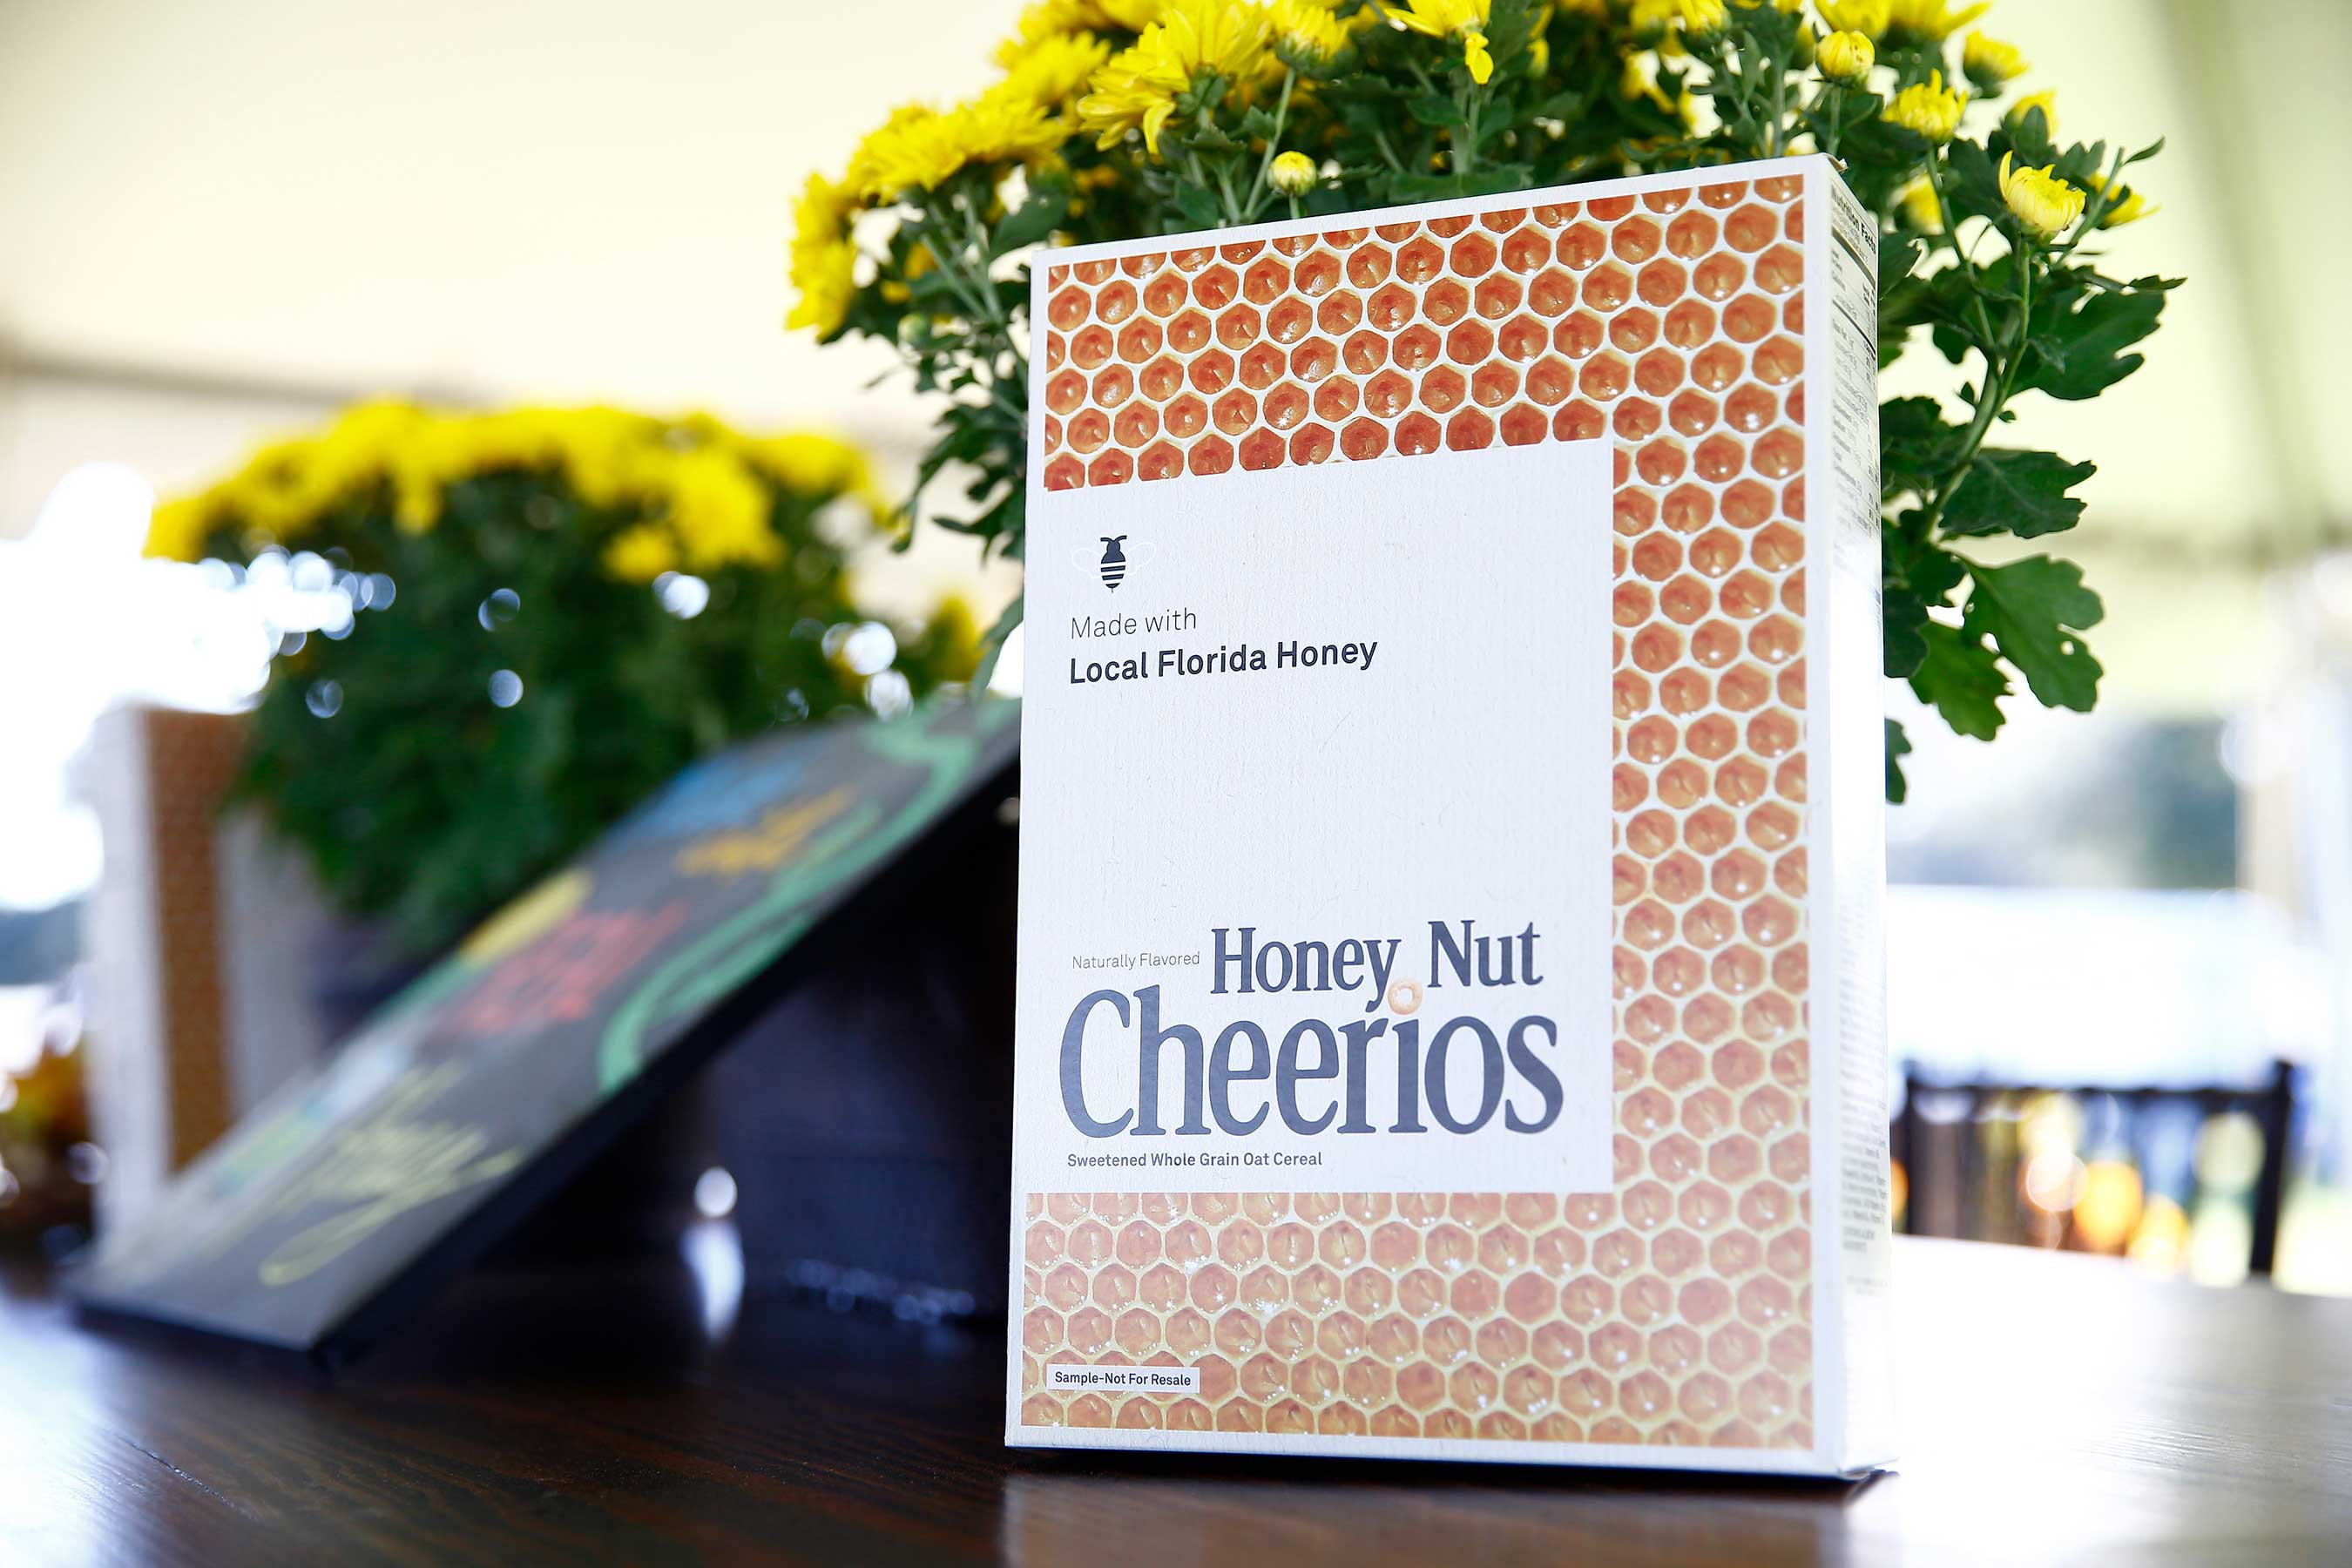 1 of only 40 limited edition boxes of Honey Nut Cheerios made from Bee Keeper Brent Dickson's real honey